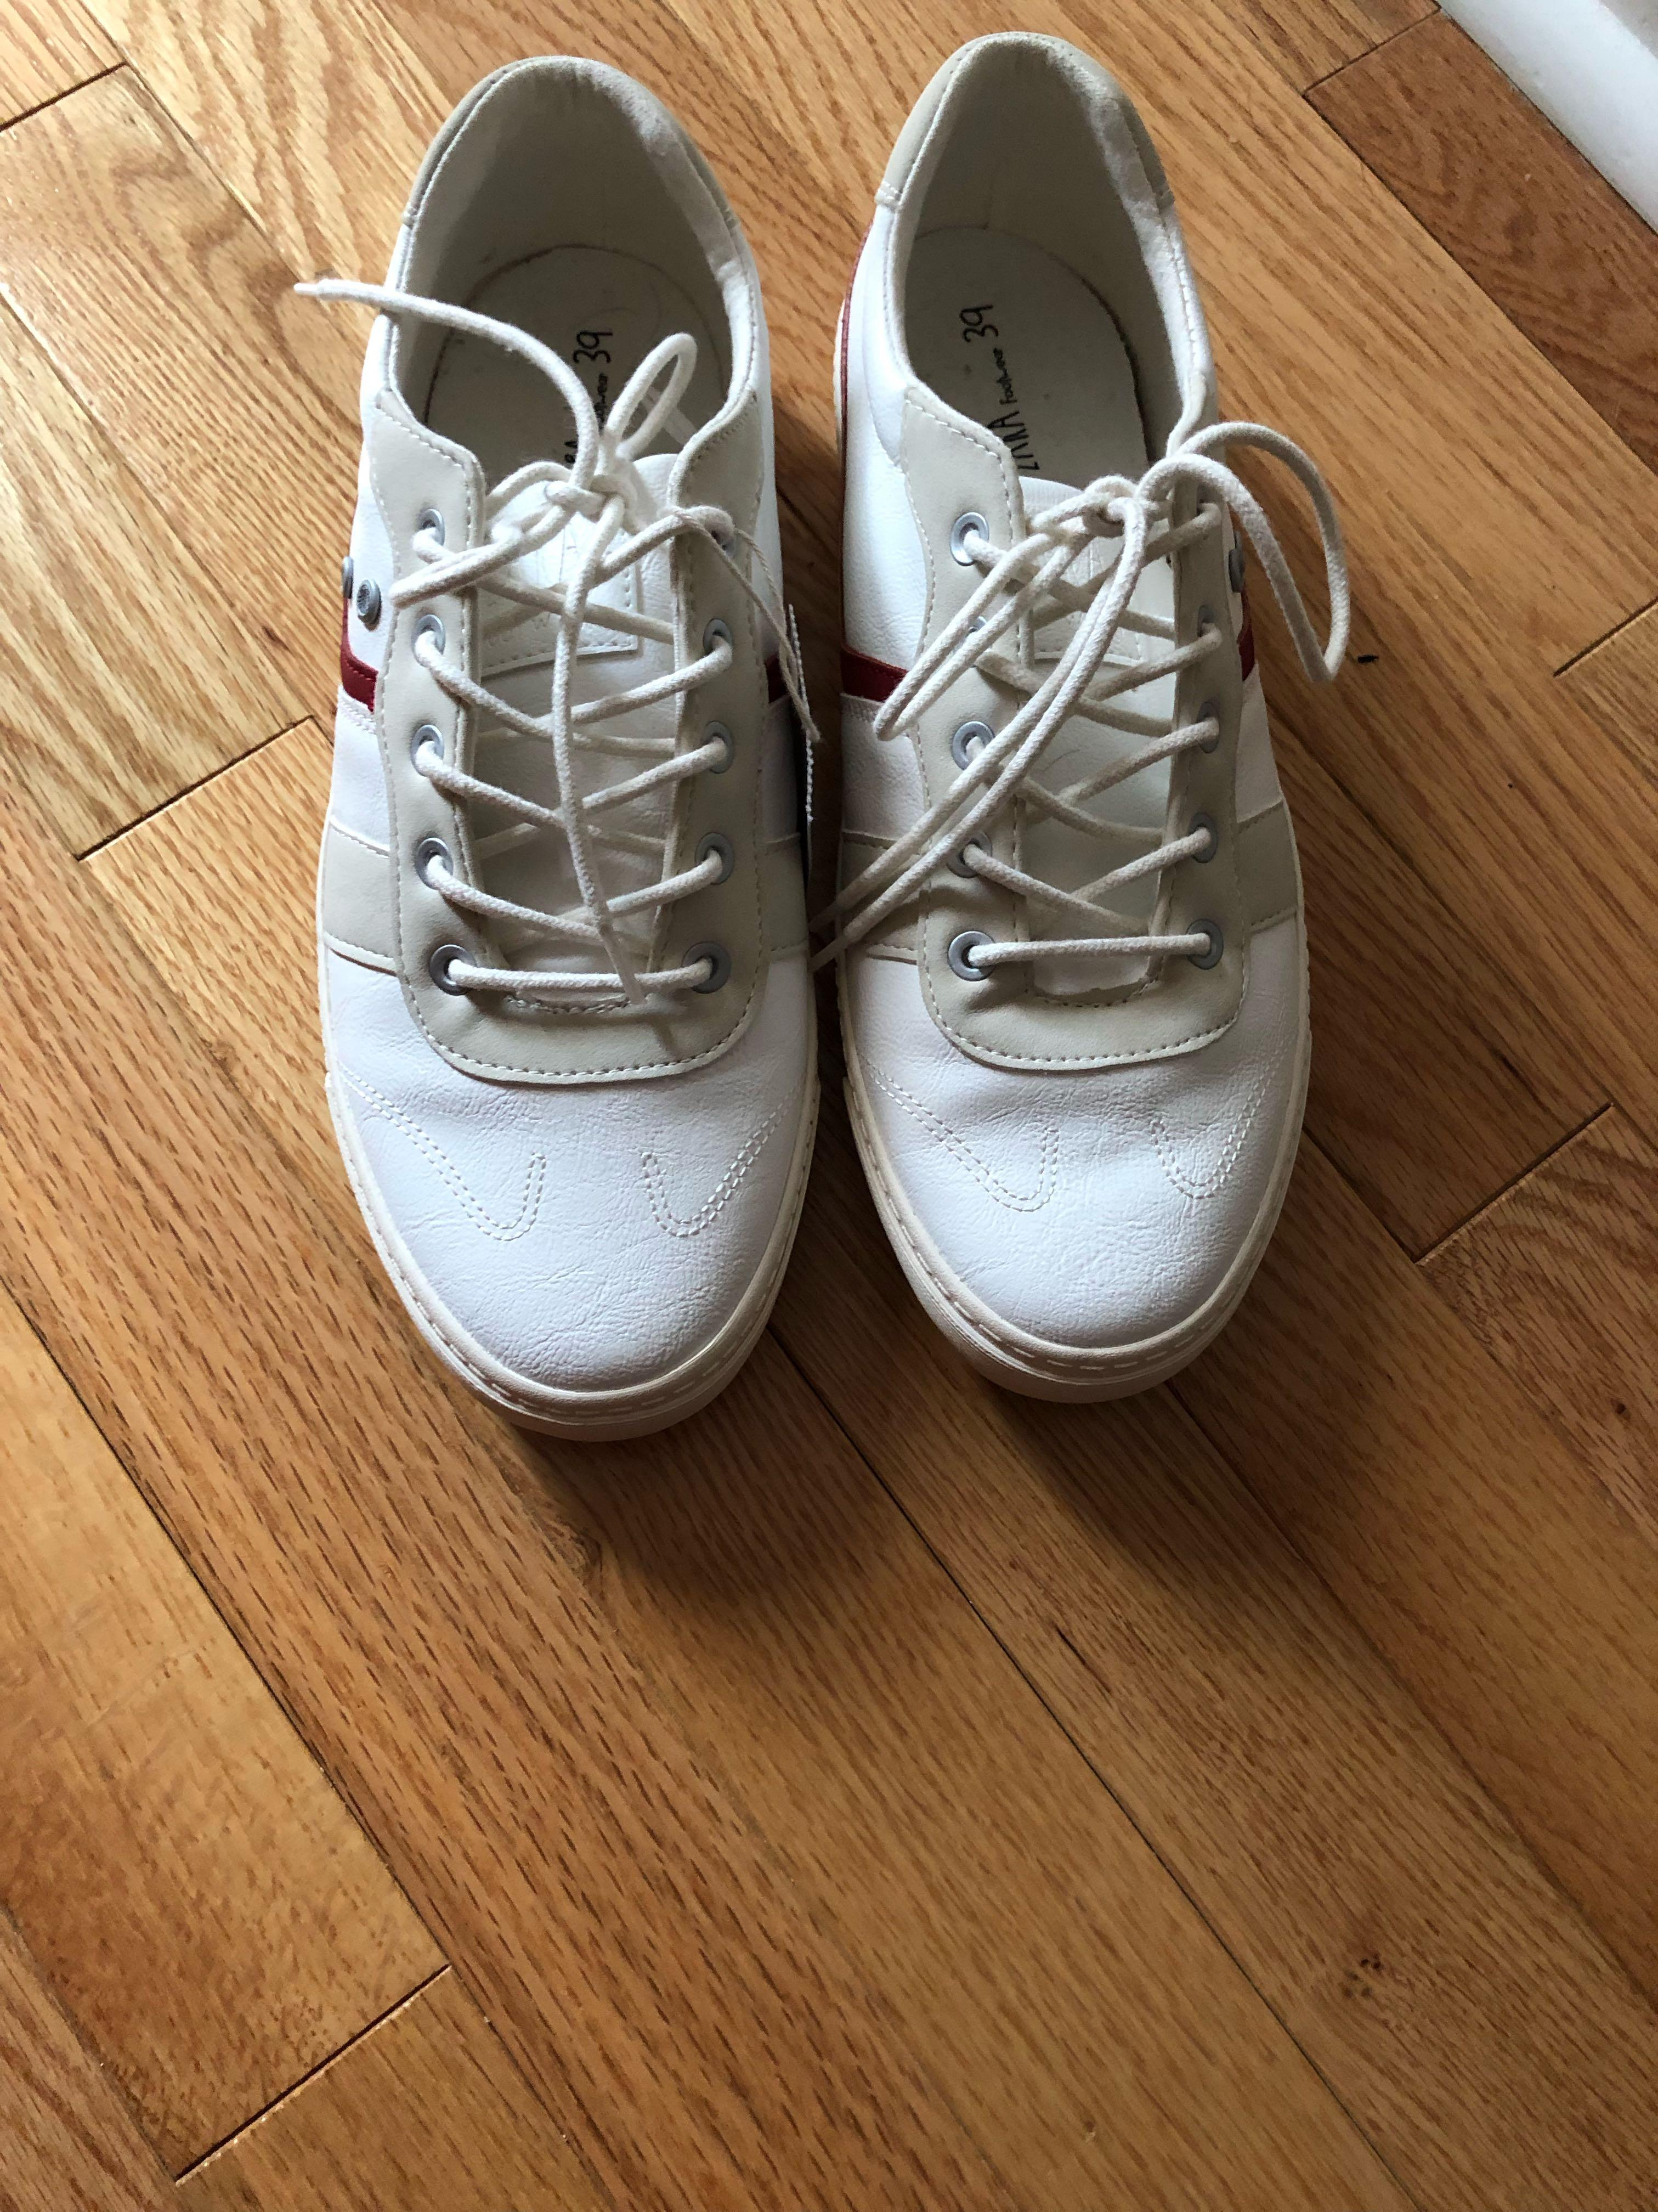 Zara sneakers with maroon and nude stripes